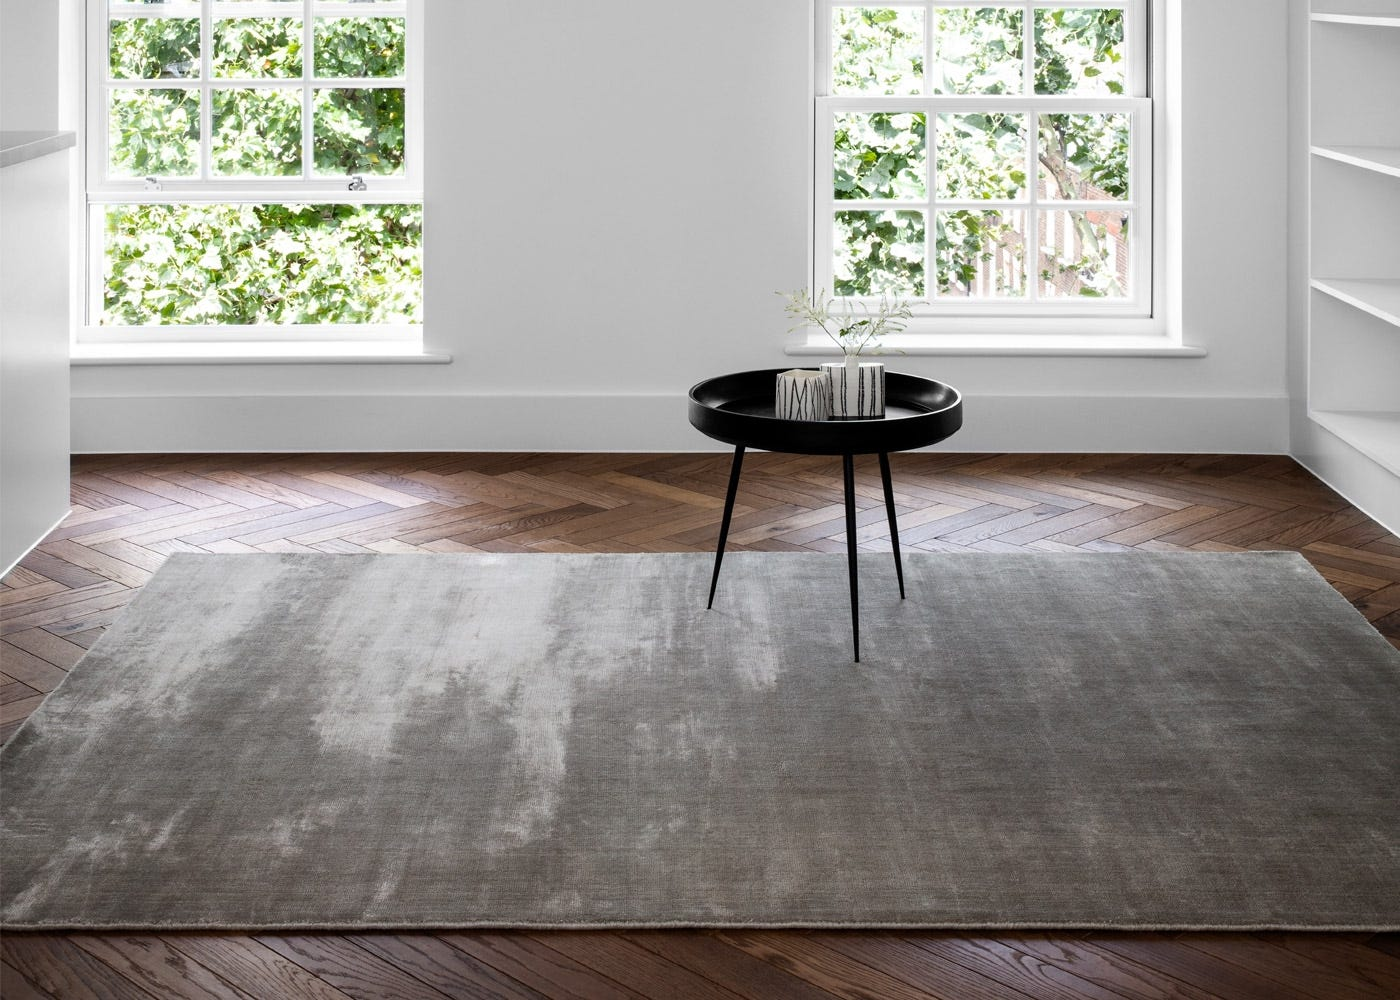 Lucens Rug Beige - Rugs - Home Accessories